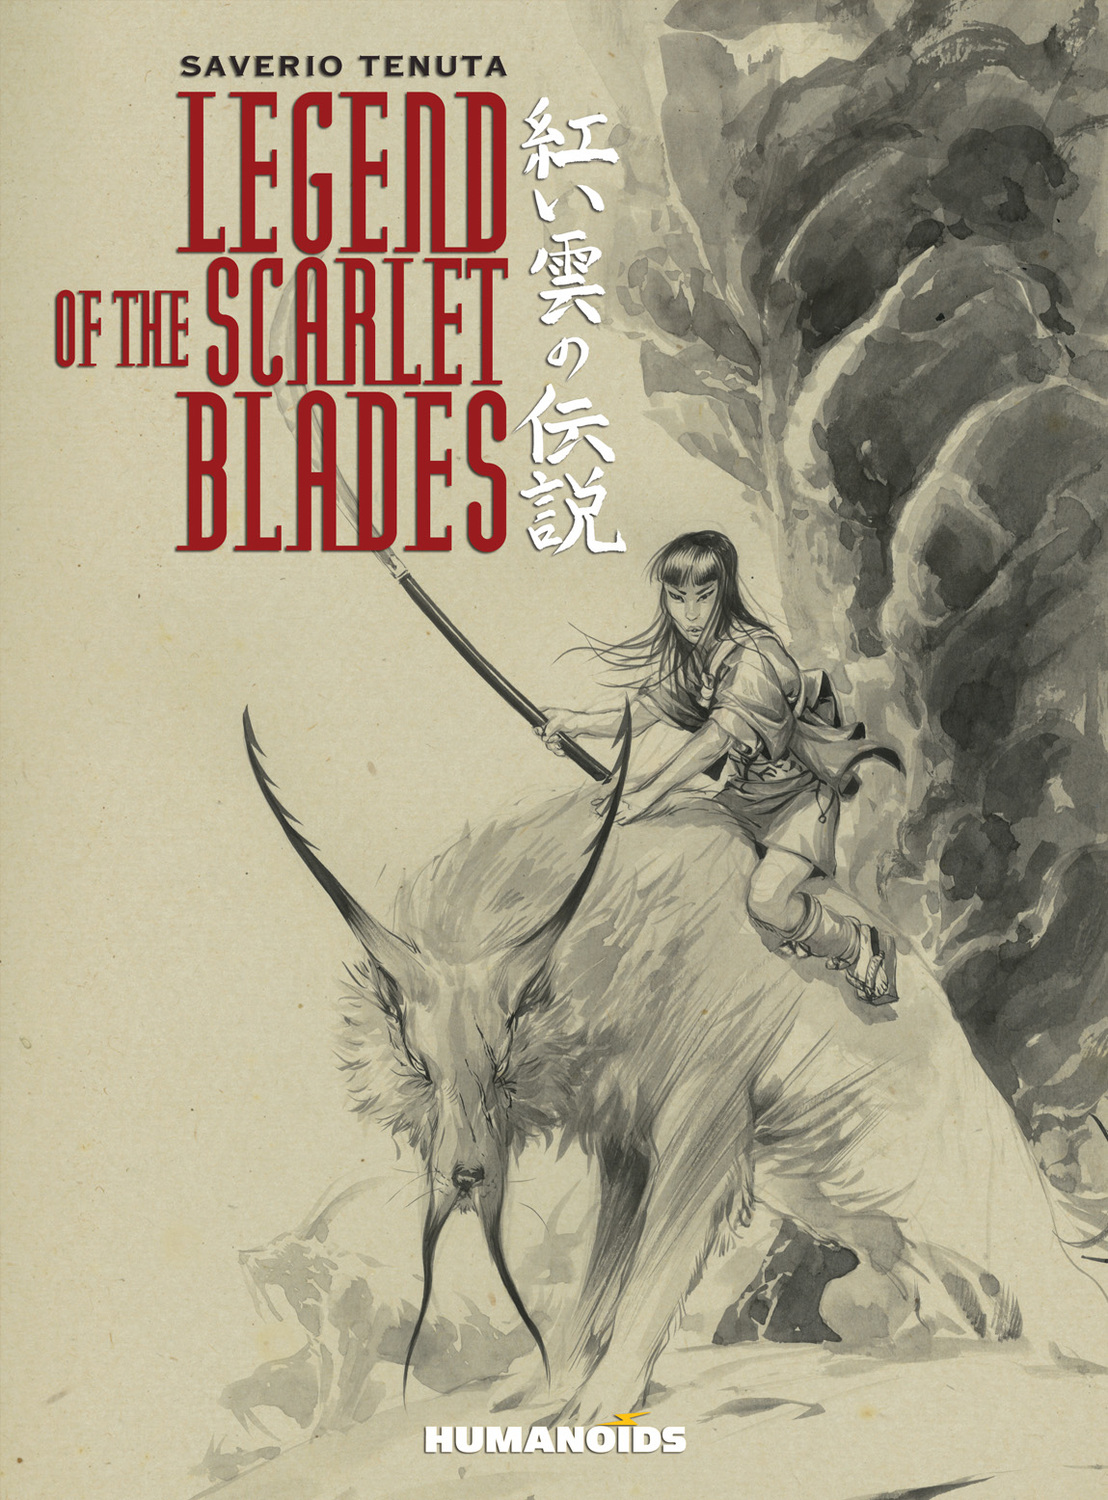 Legend of the Scarlet Blades treasure hunters quest for the city of gold